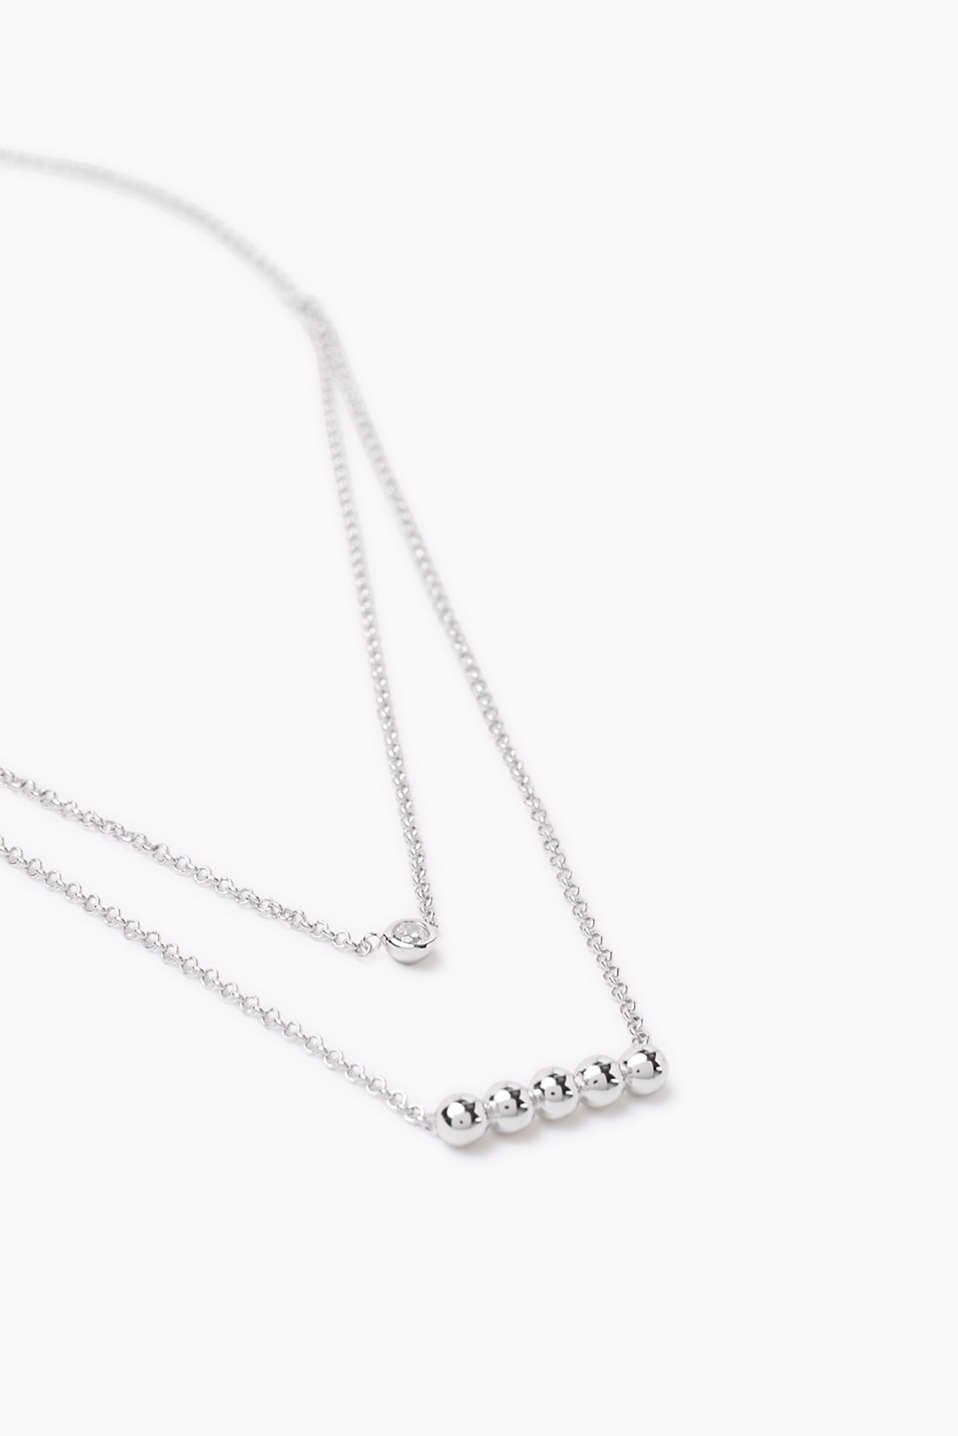 Double strand necklace in sterling silver